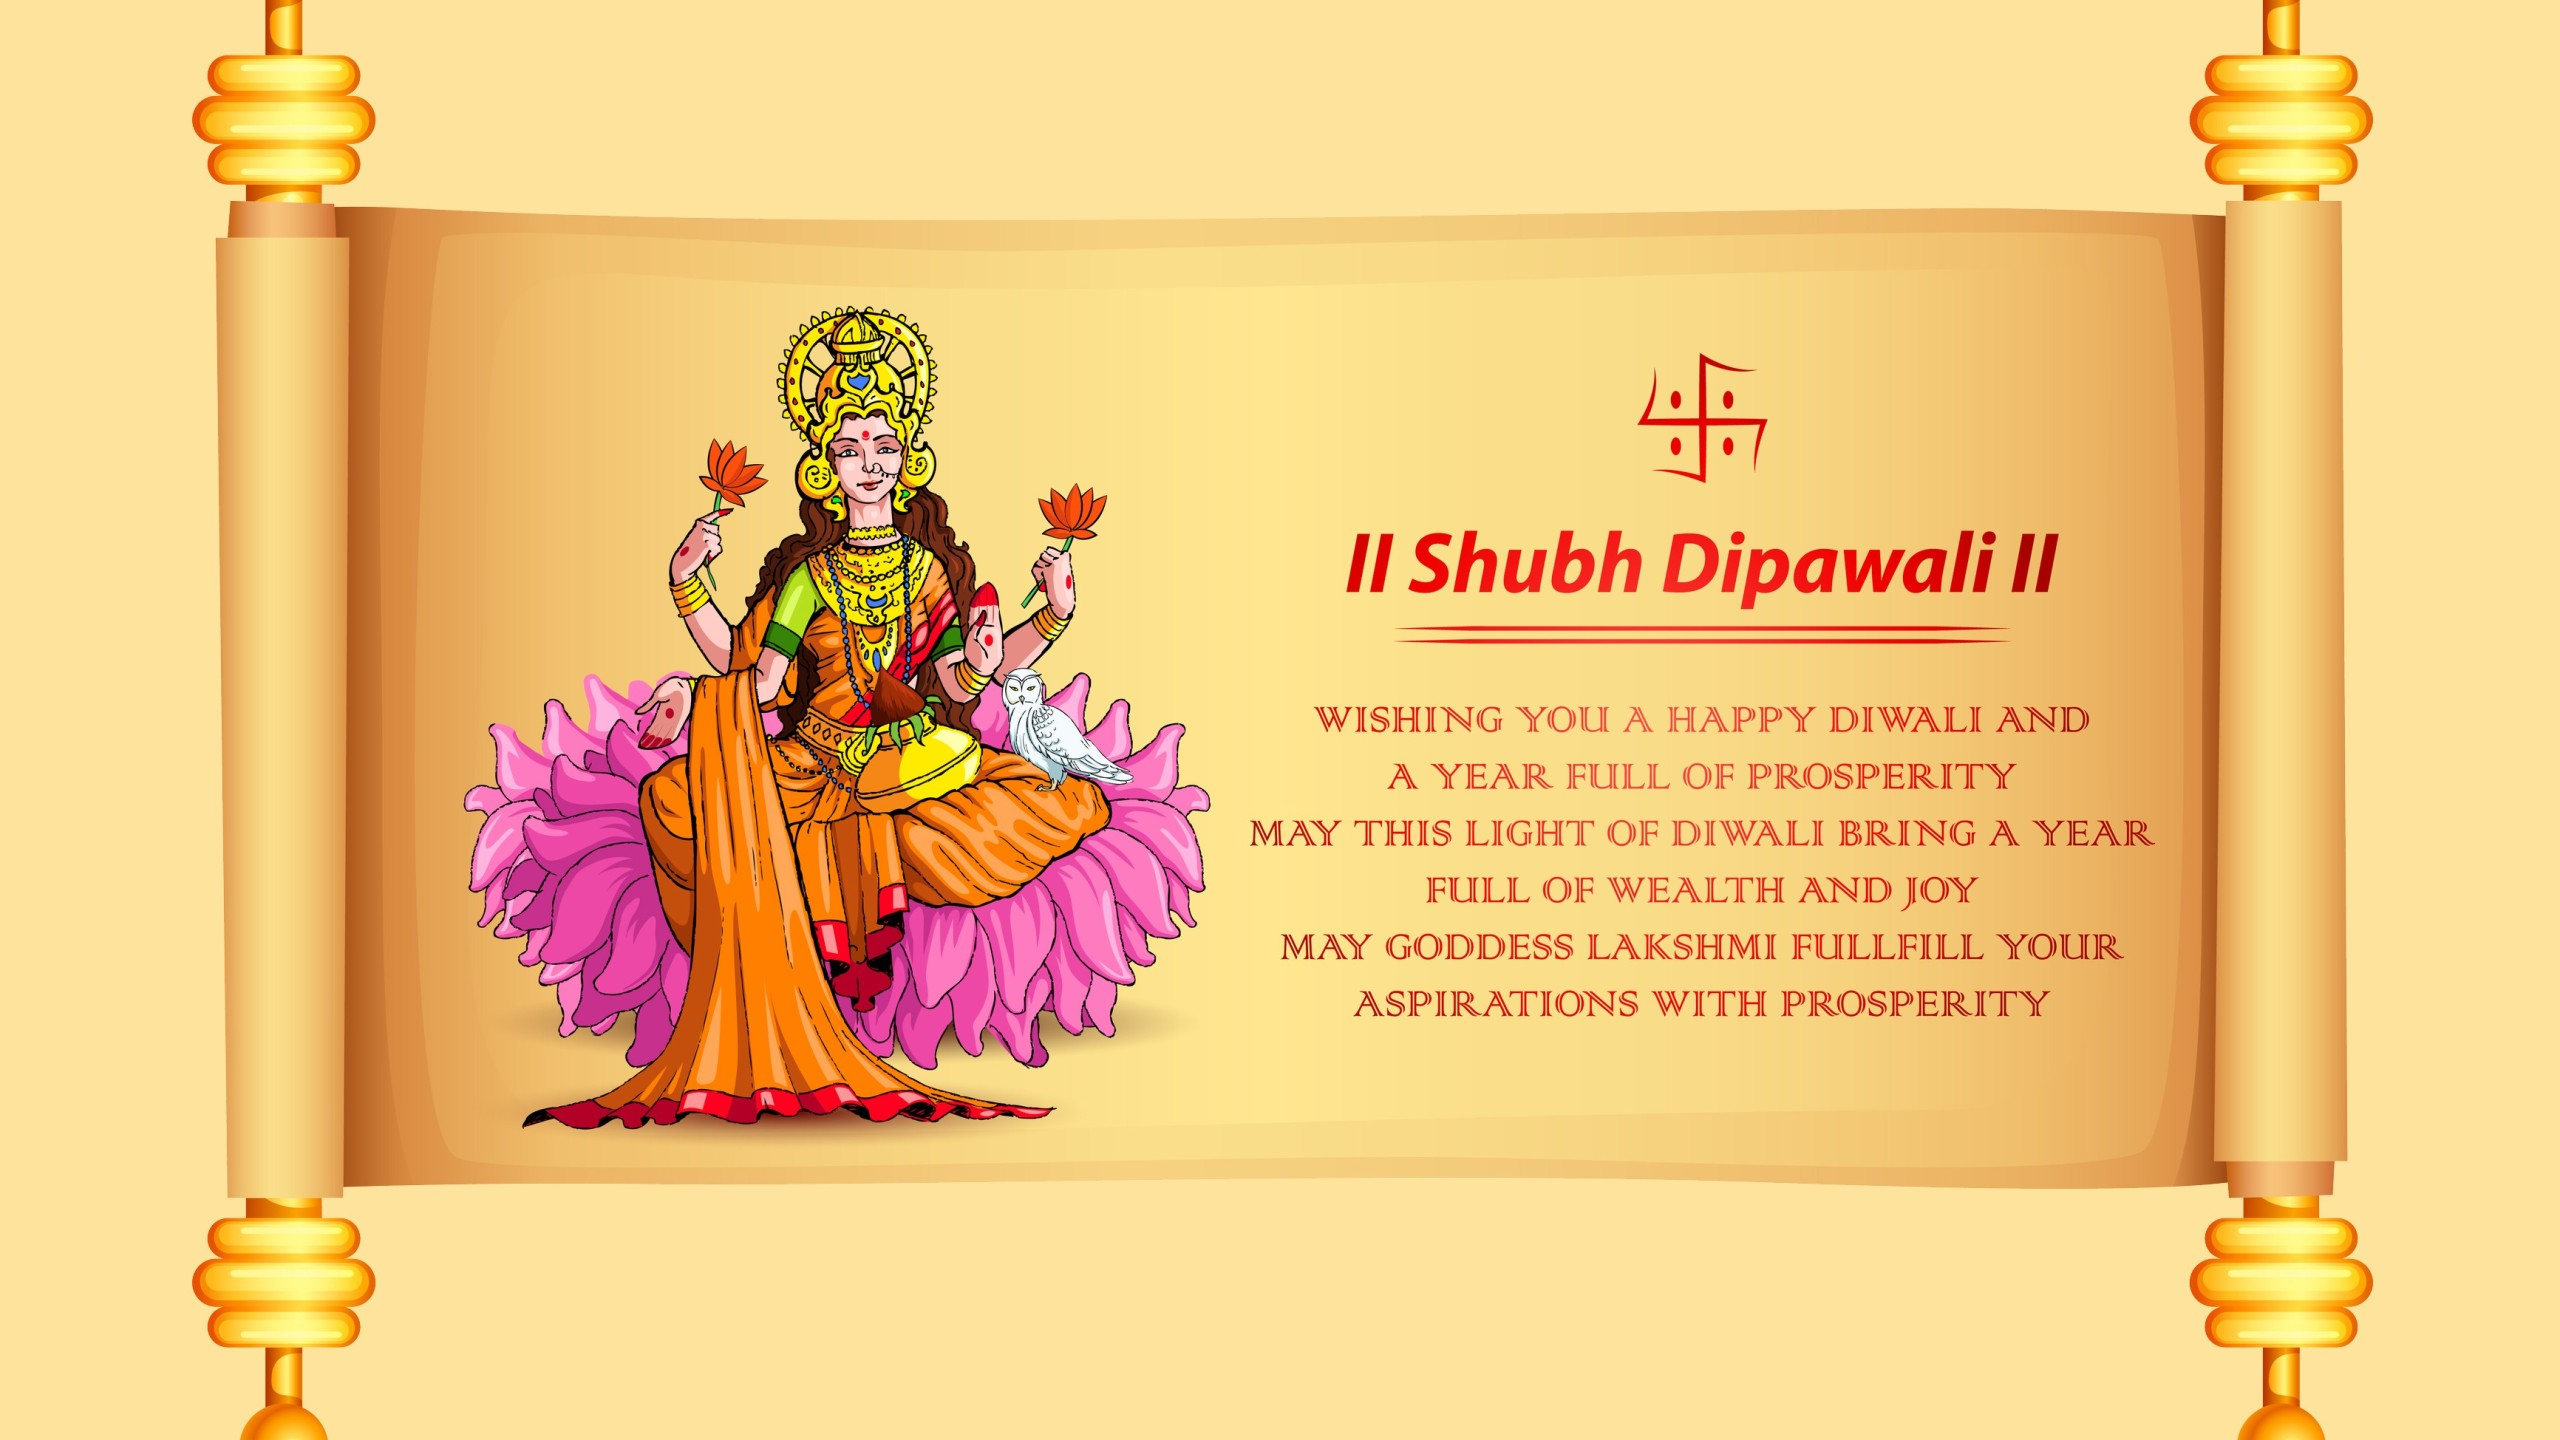 Happy Diwali With Dhanteras Greetings Wallpapers Latest 2560x1440